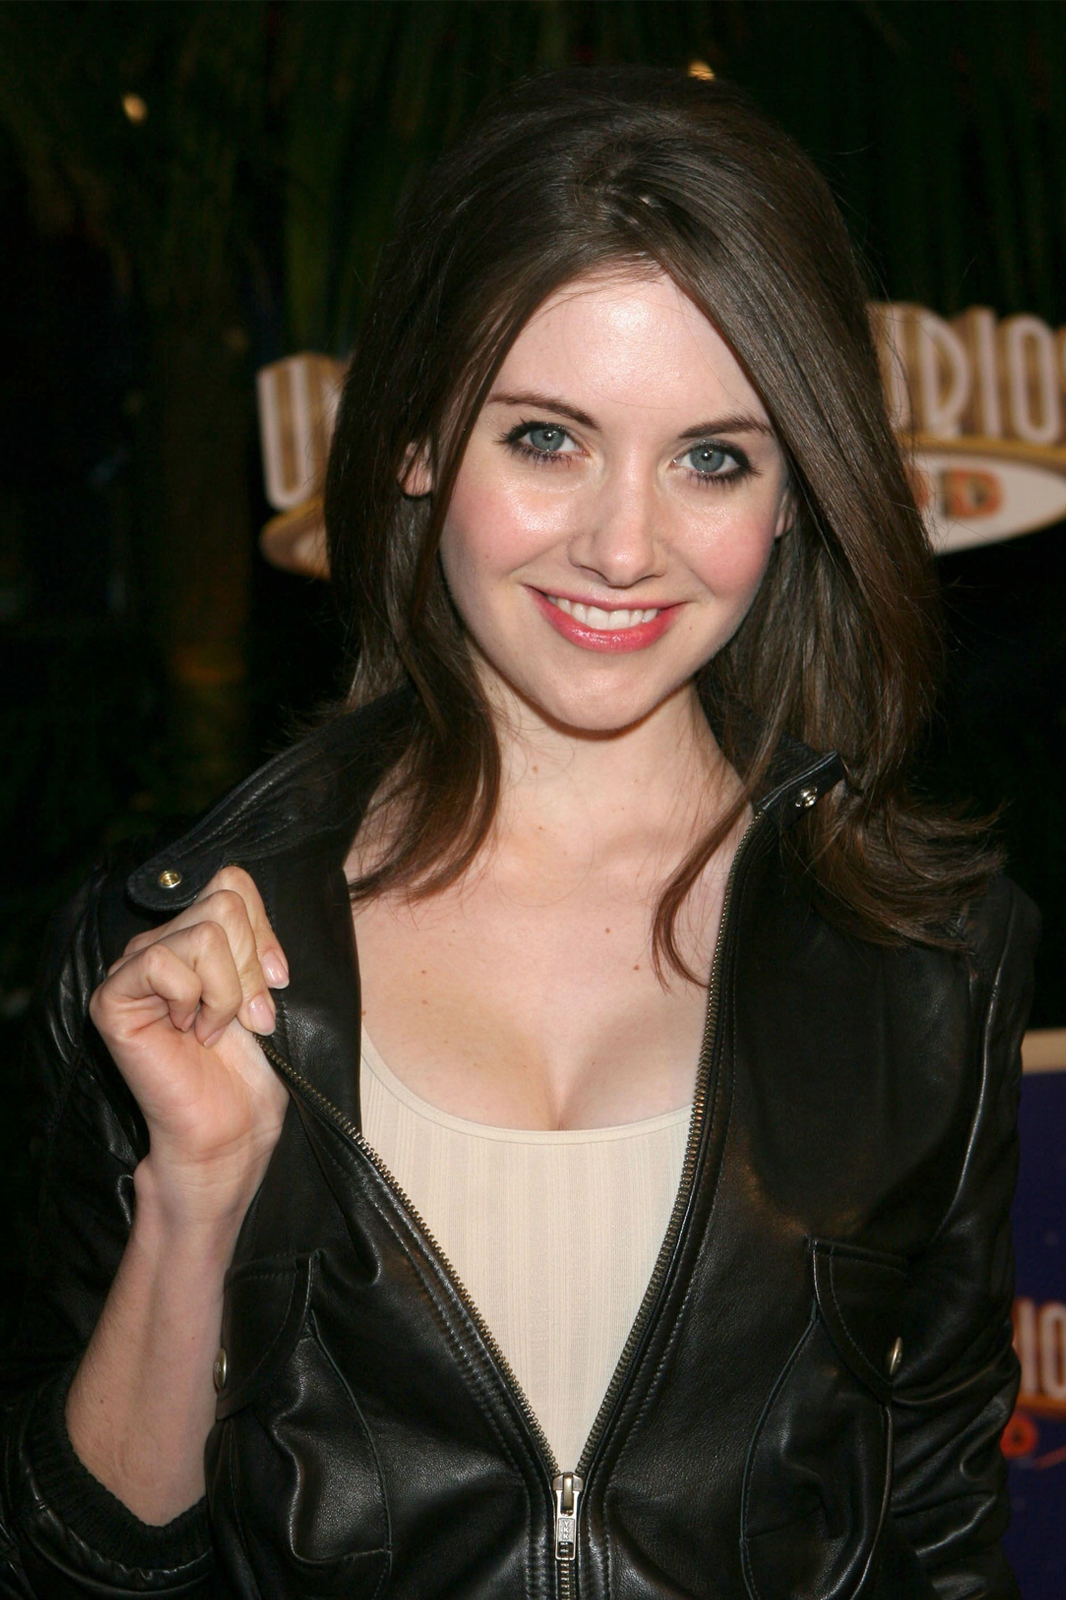 alison brie bra size - pics and info at herbrasize